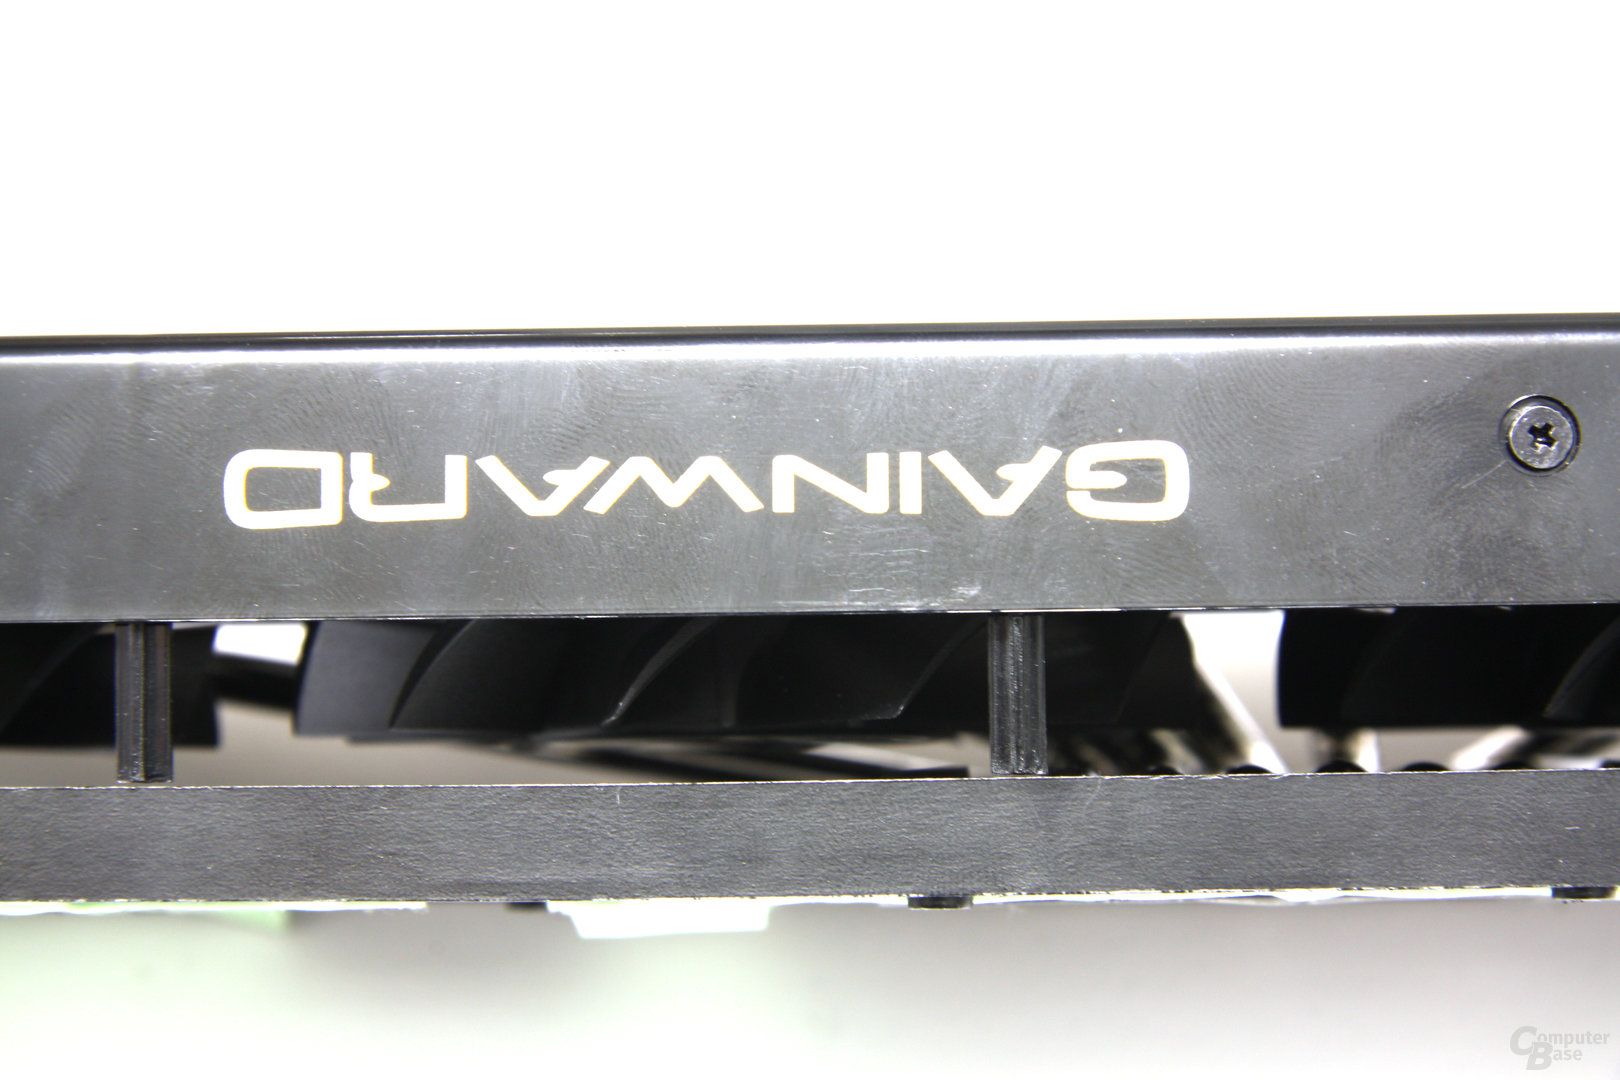 GeForce GTX 580 Phantom Seitenblick